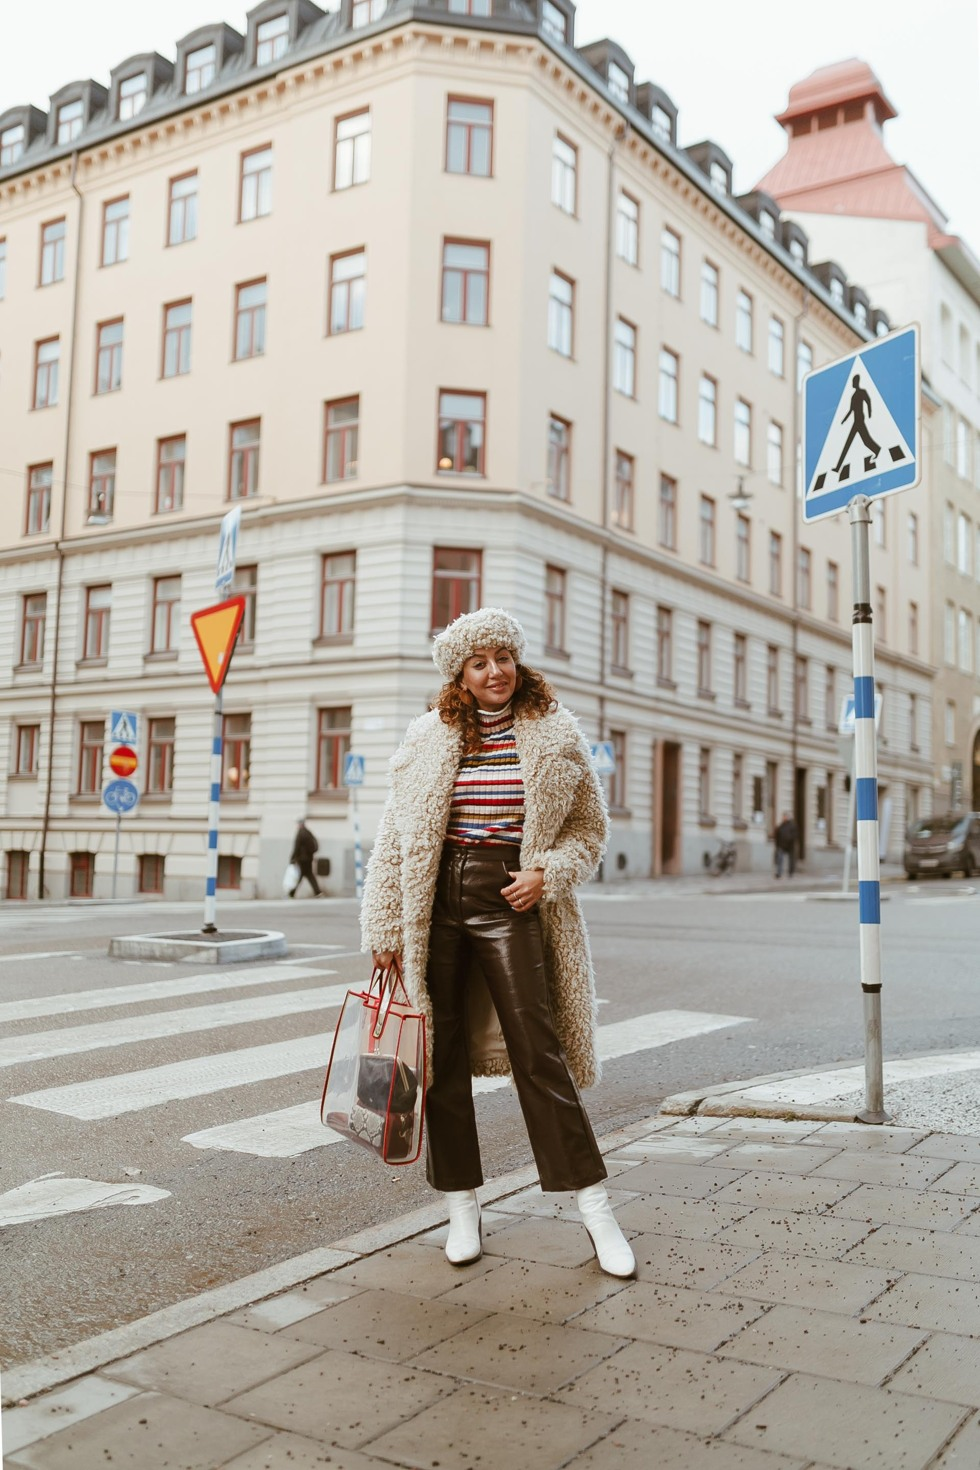 sara-che-monki-teddy-kappa-coat-faux-skinnbyxa-leather-pants-nelly-vit-boots-beck-sondergaard-väska-plast-tote-plastic-vinter-uniform-winter